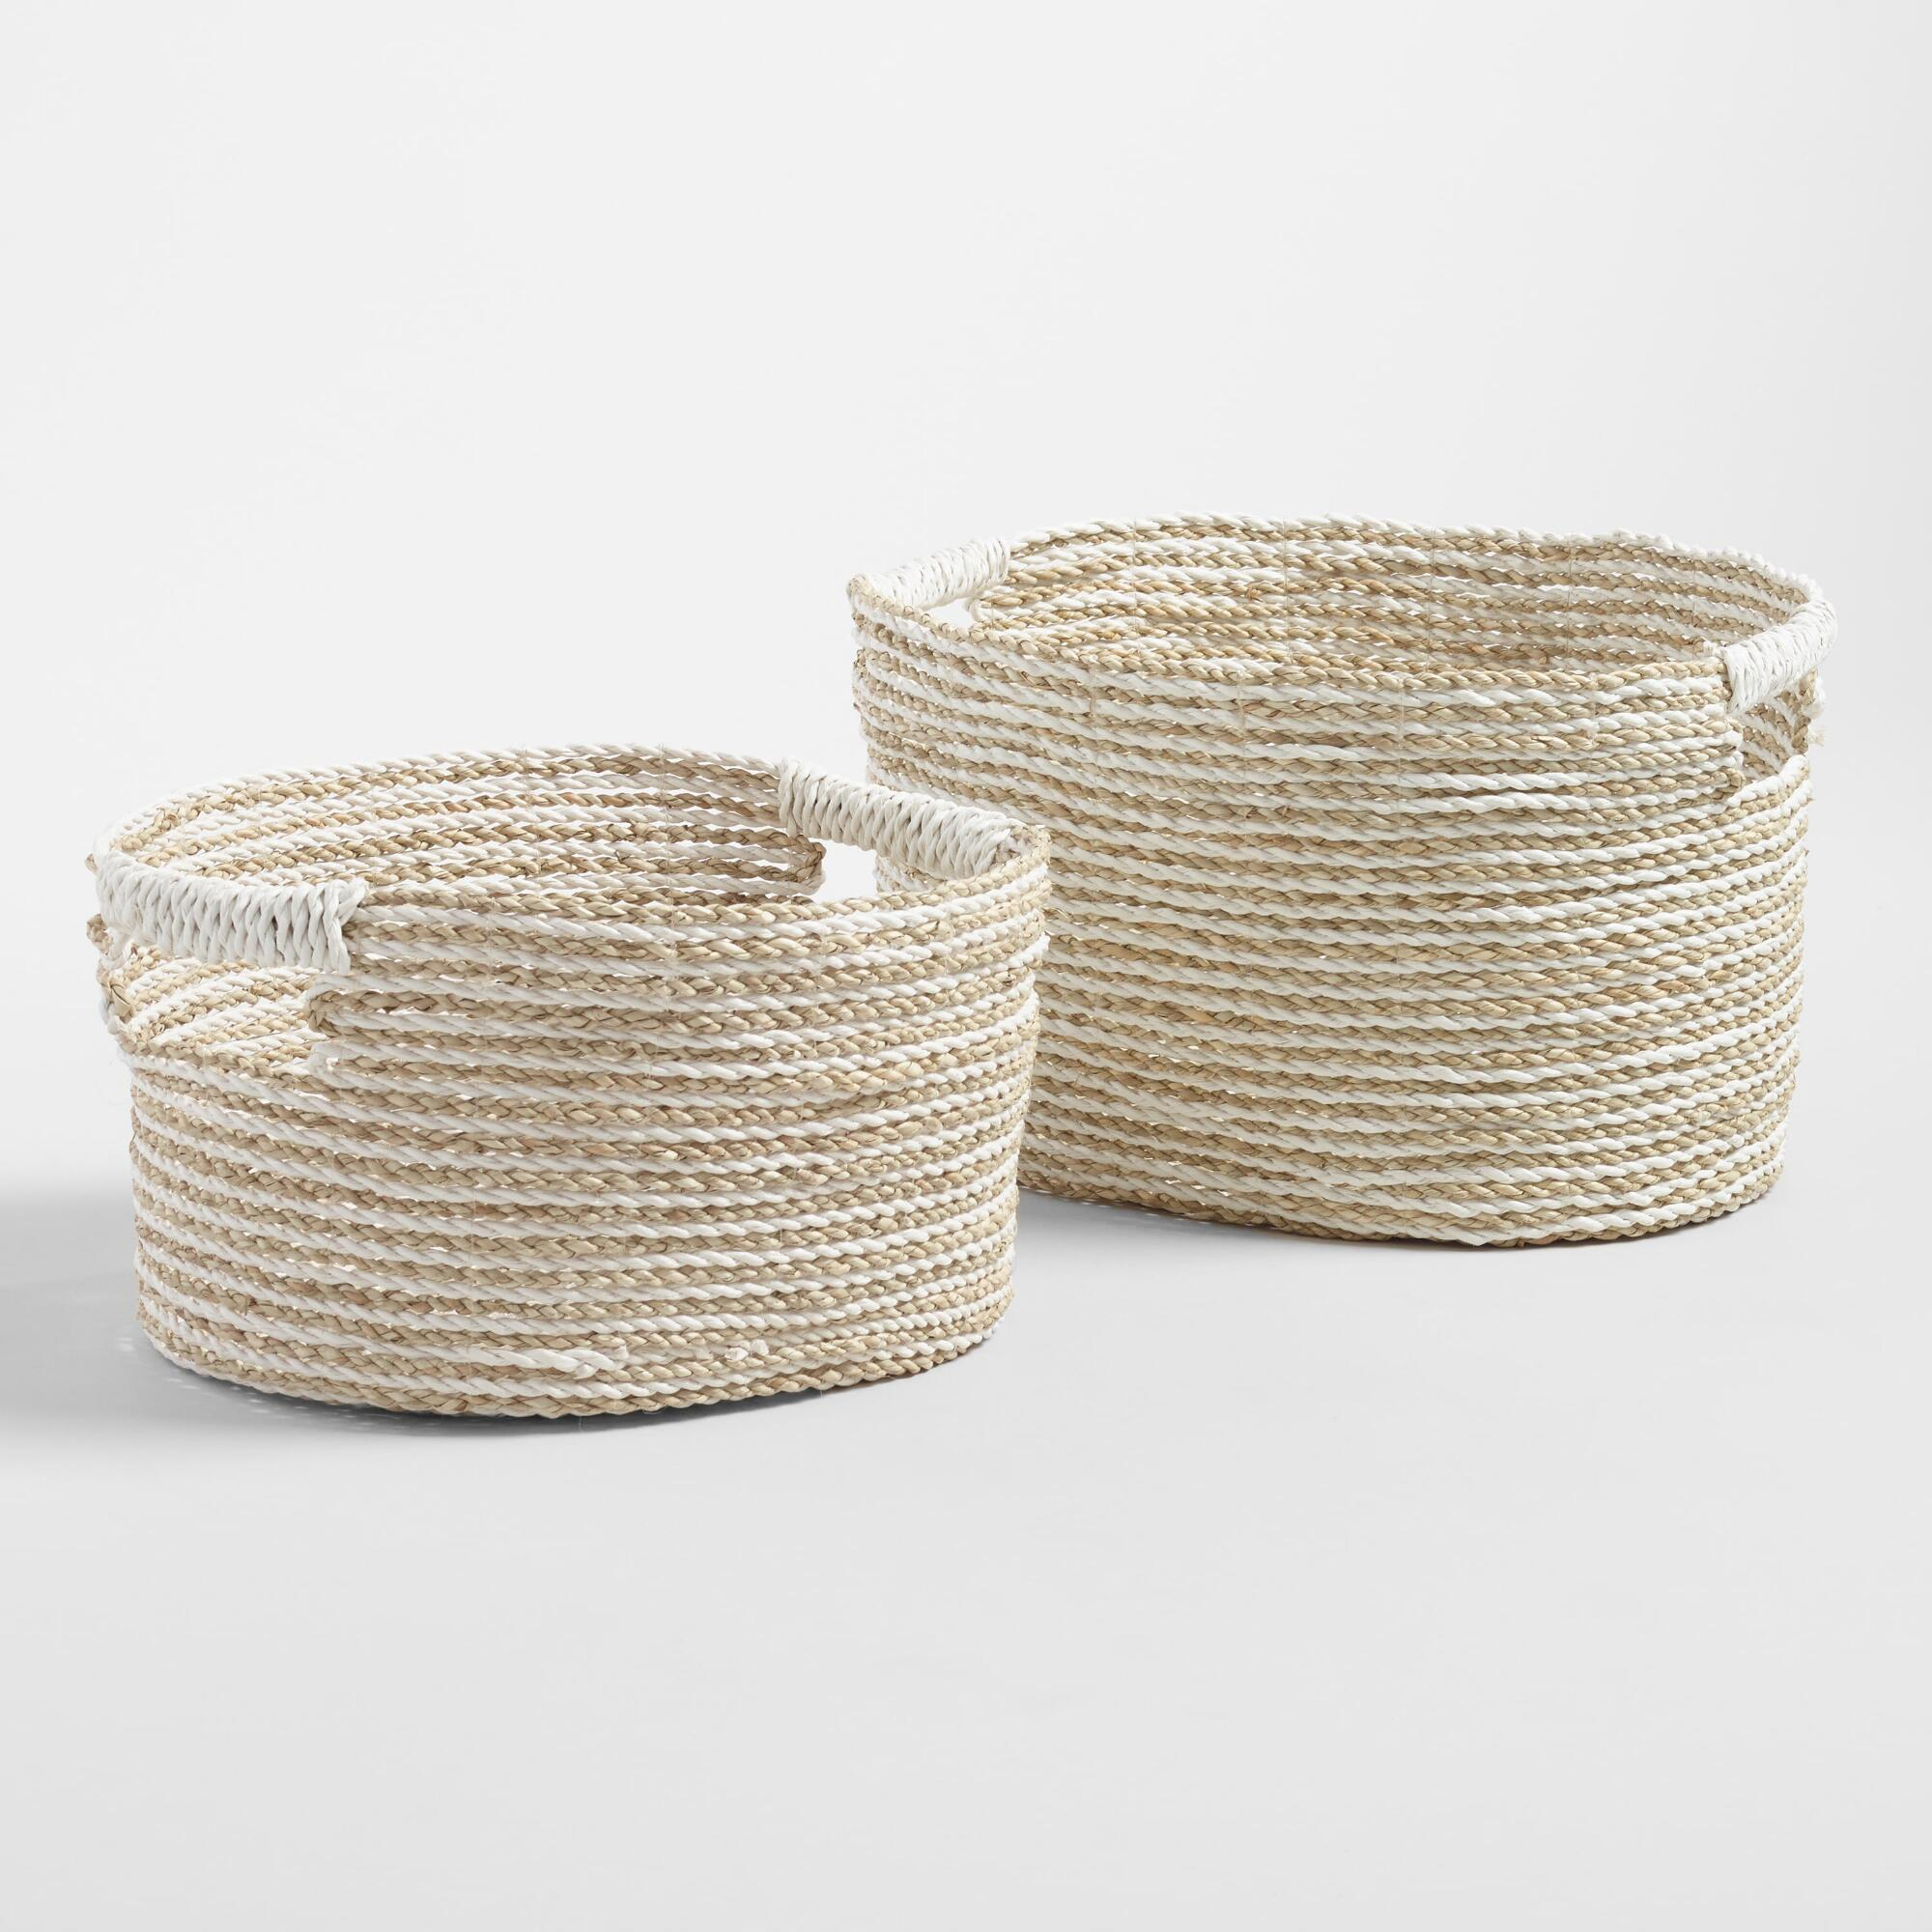 White and Natural Seagrass Bianca Utility Baskets - Small by World Market Small